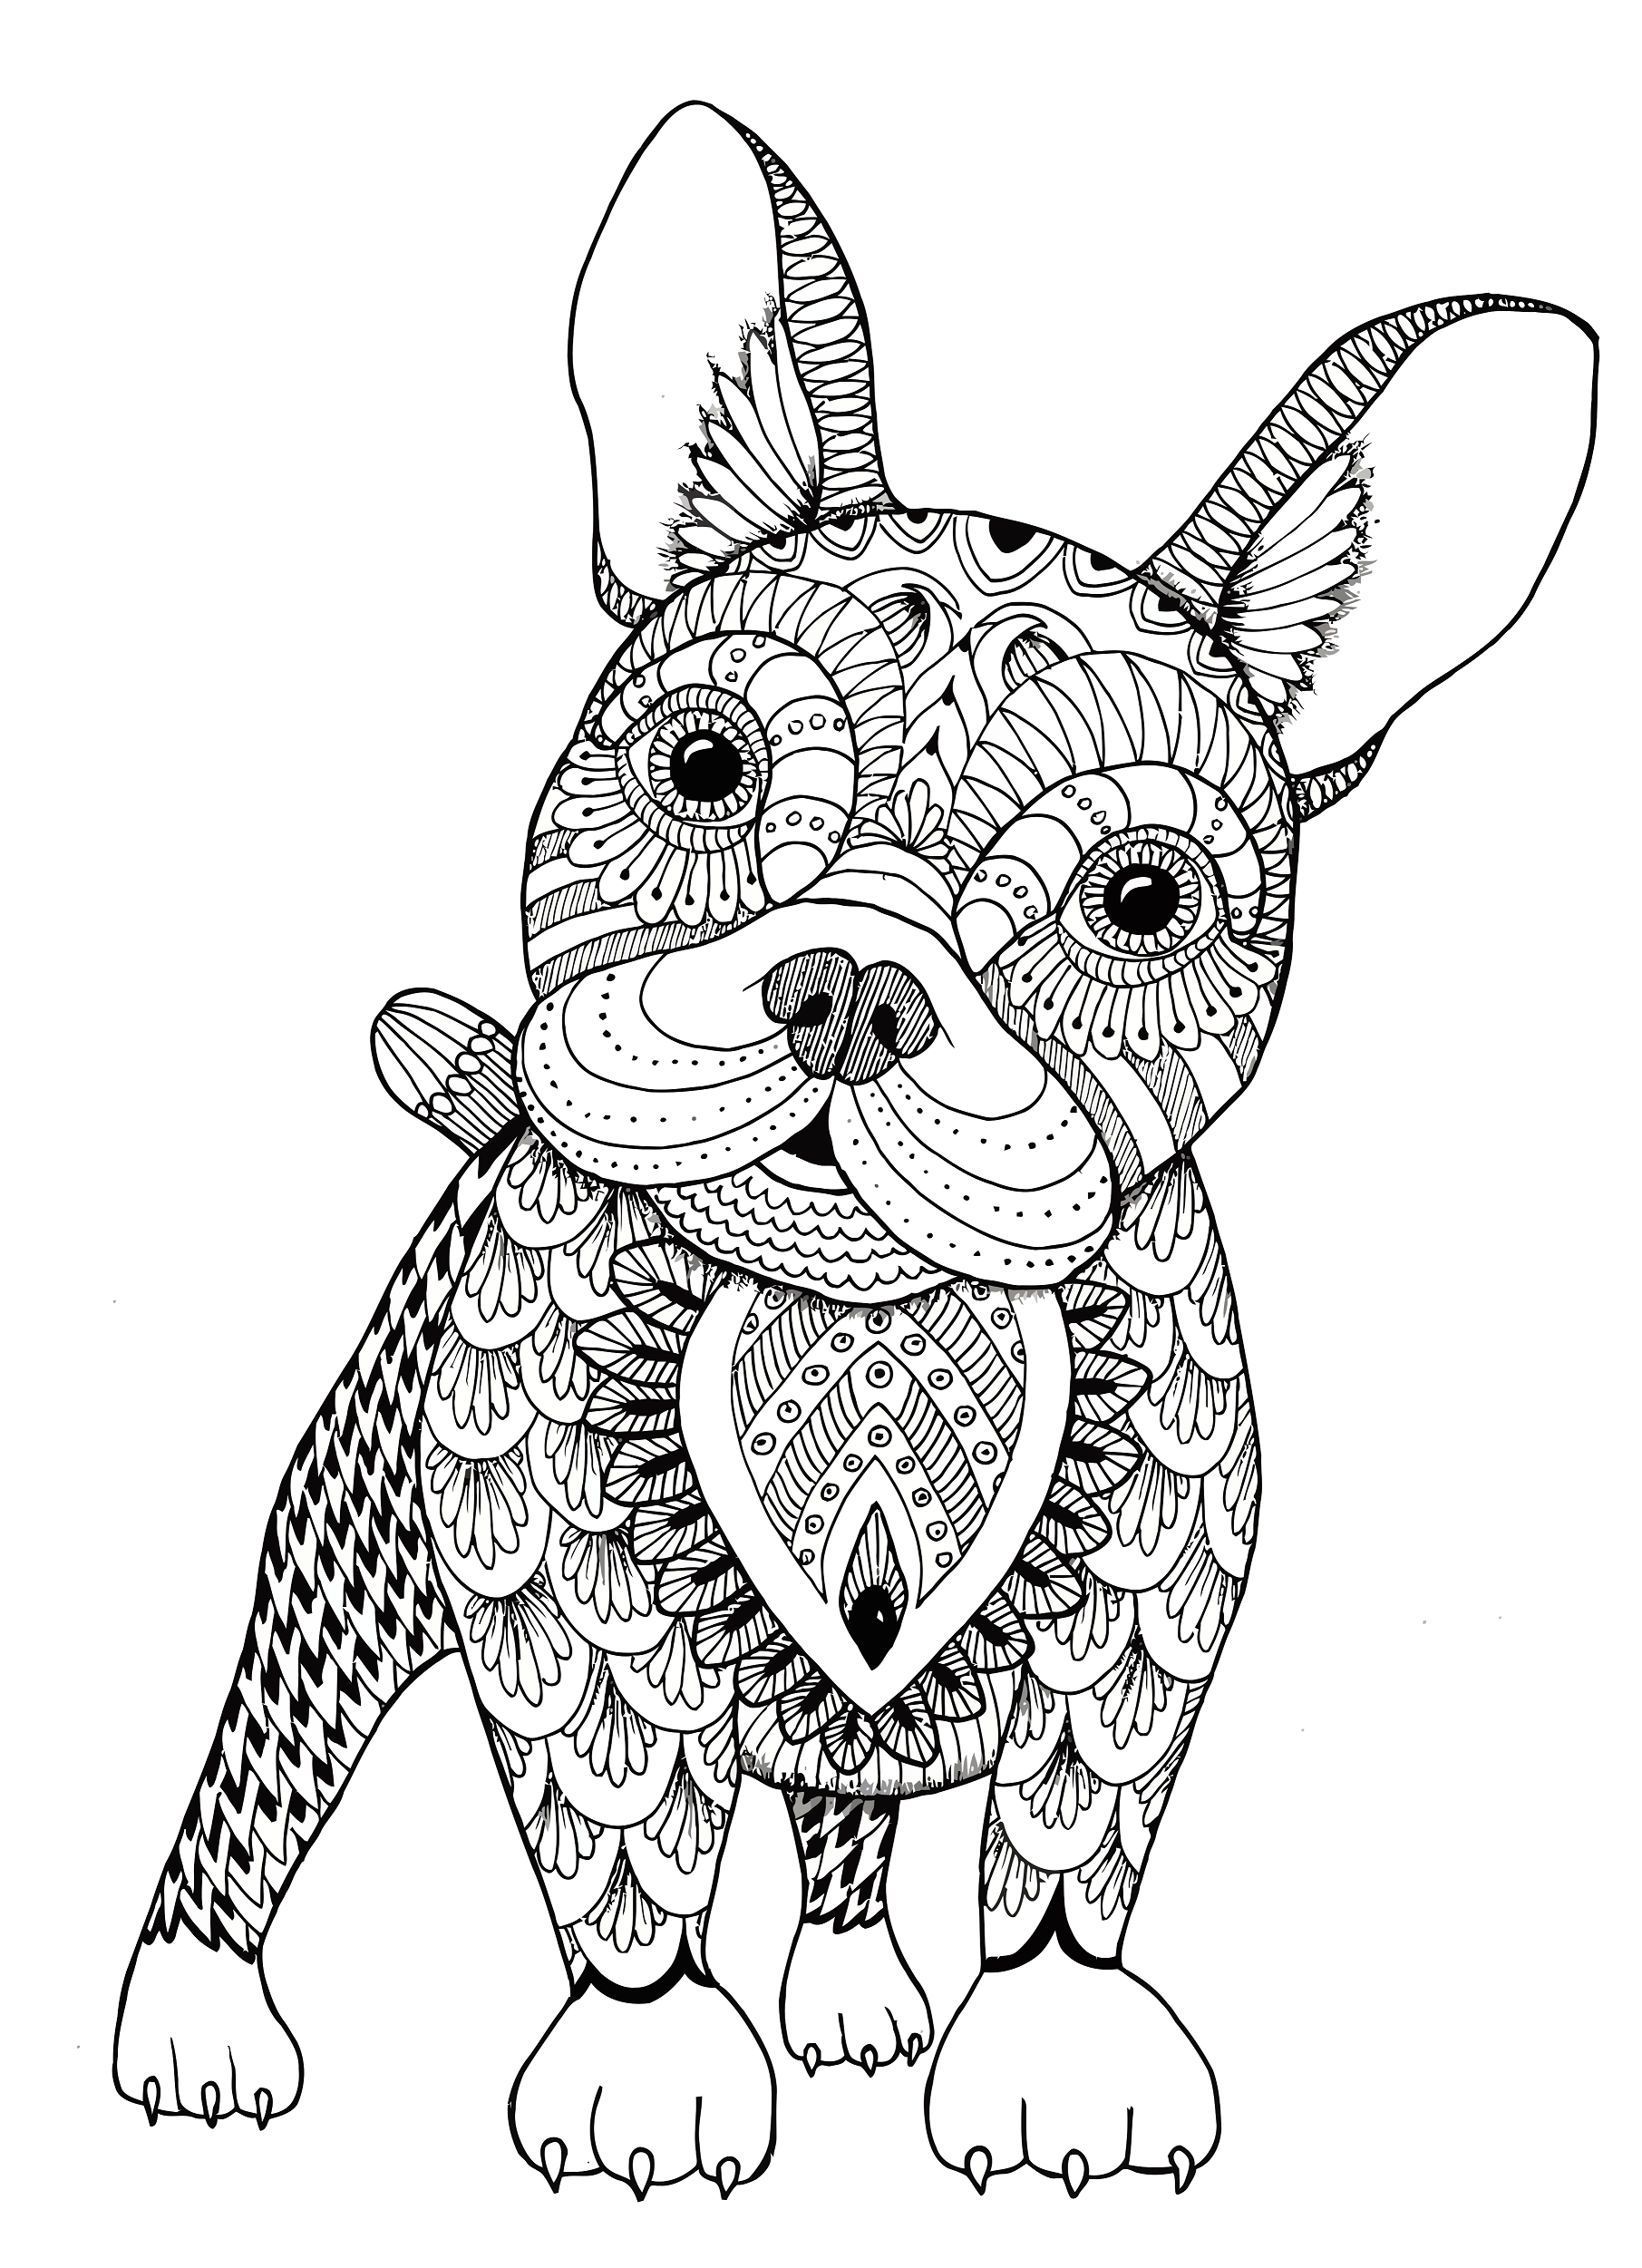 Relicaaa I Will Send You 160 Printable Coloring Pages Of Floral Mandalas And Animals For 15 On Fiverr Com Dog Coloring Book Dog Coloring Page Owl Coloring Pages [ 2501 x 1811 Pixel ]